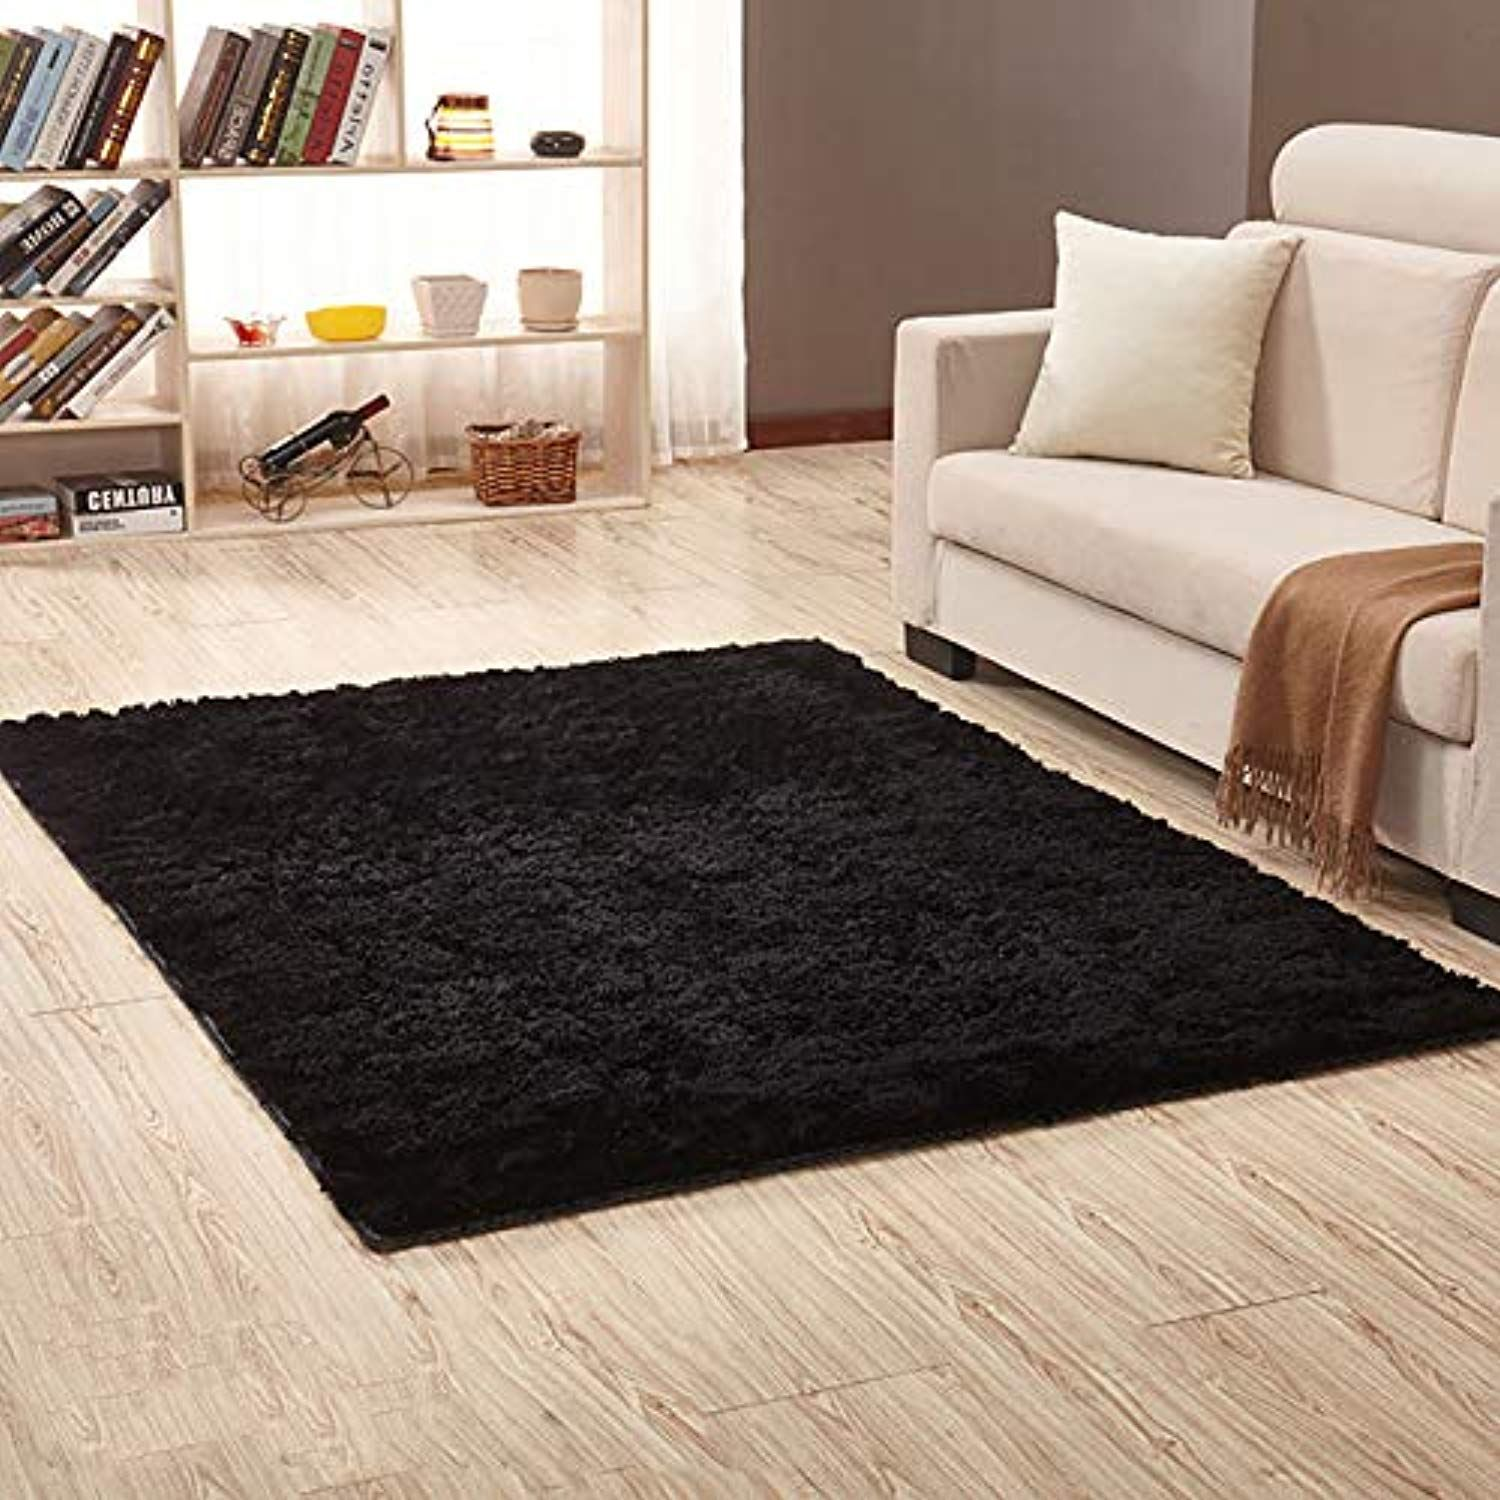 Thee Ultra Soft Shaggy Fluffy Area Rug Home Decor Living Room